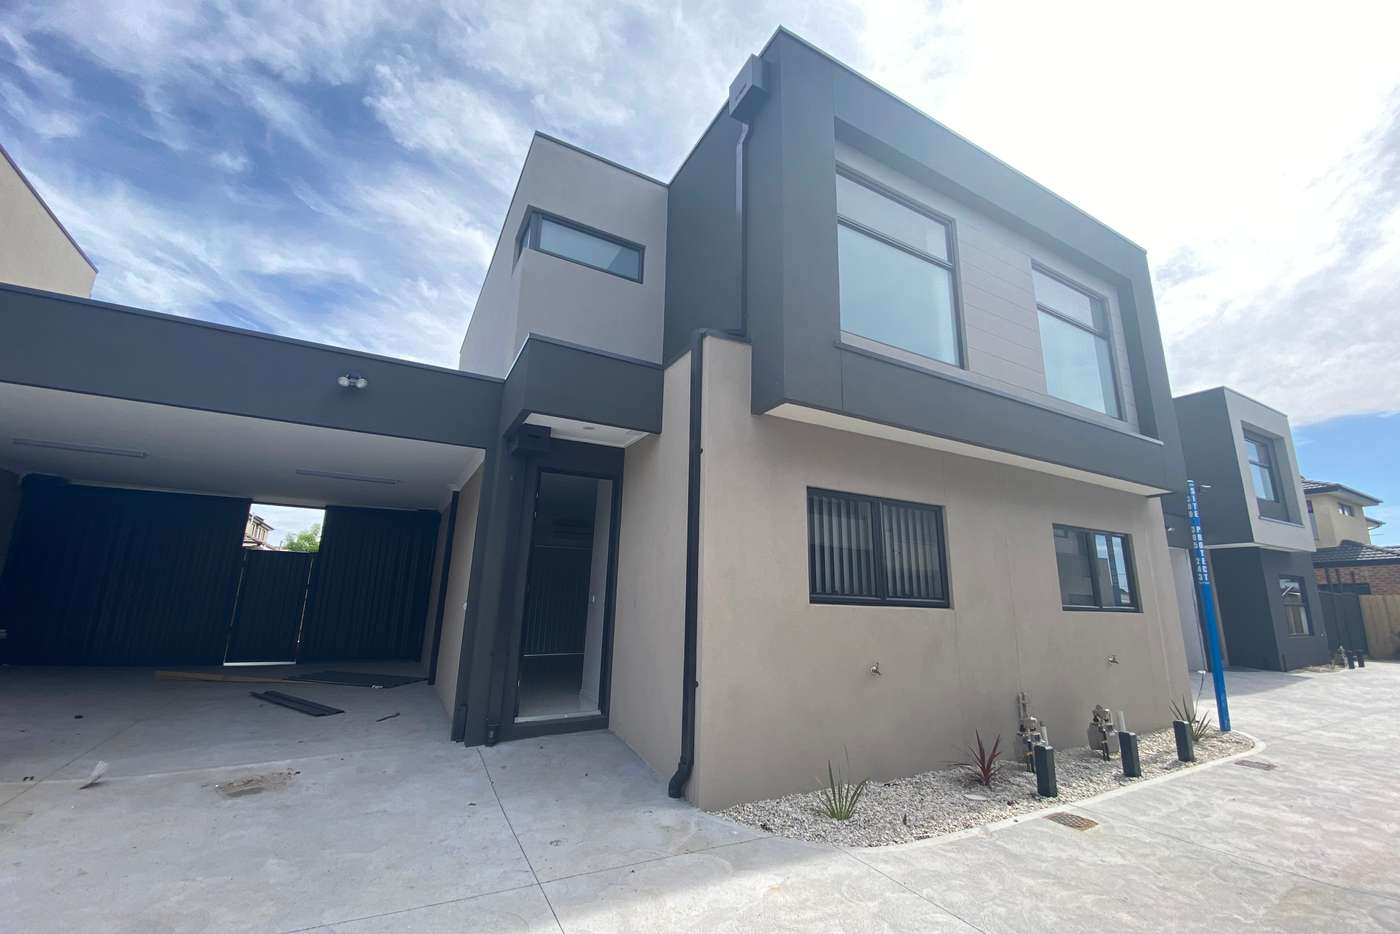 Main view of Homely townhouse listing, 8/132-134 Cuthbert Street, Broadmeadows VIC 3047